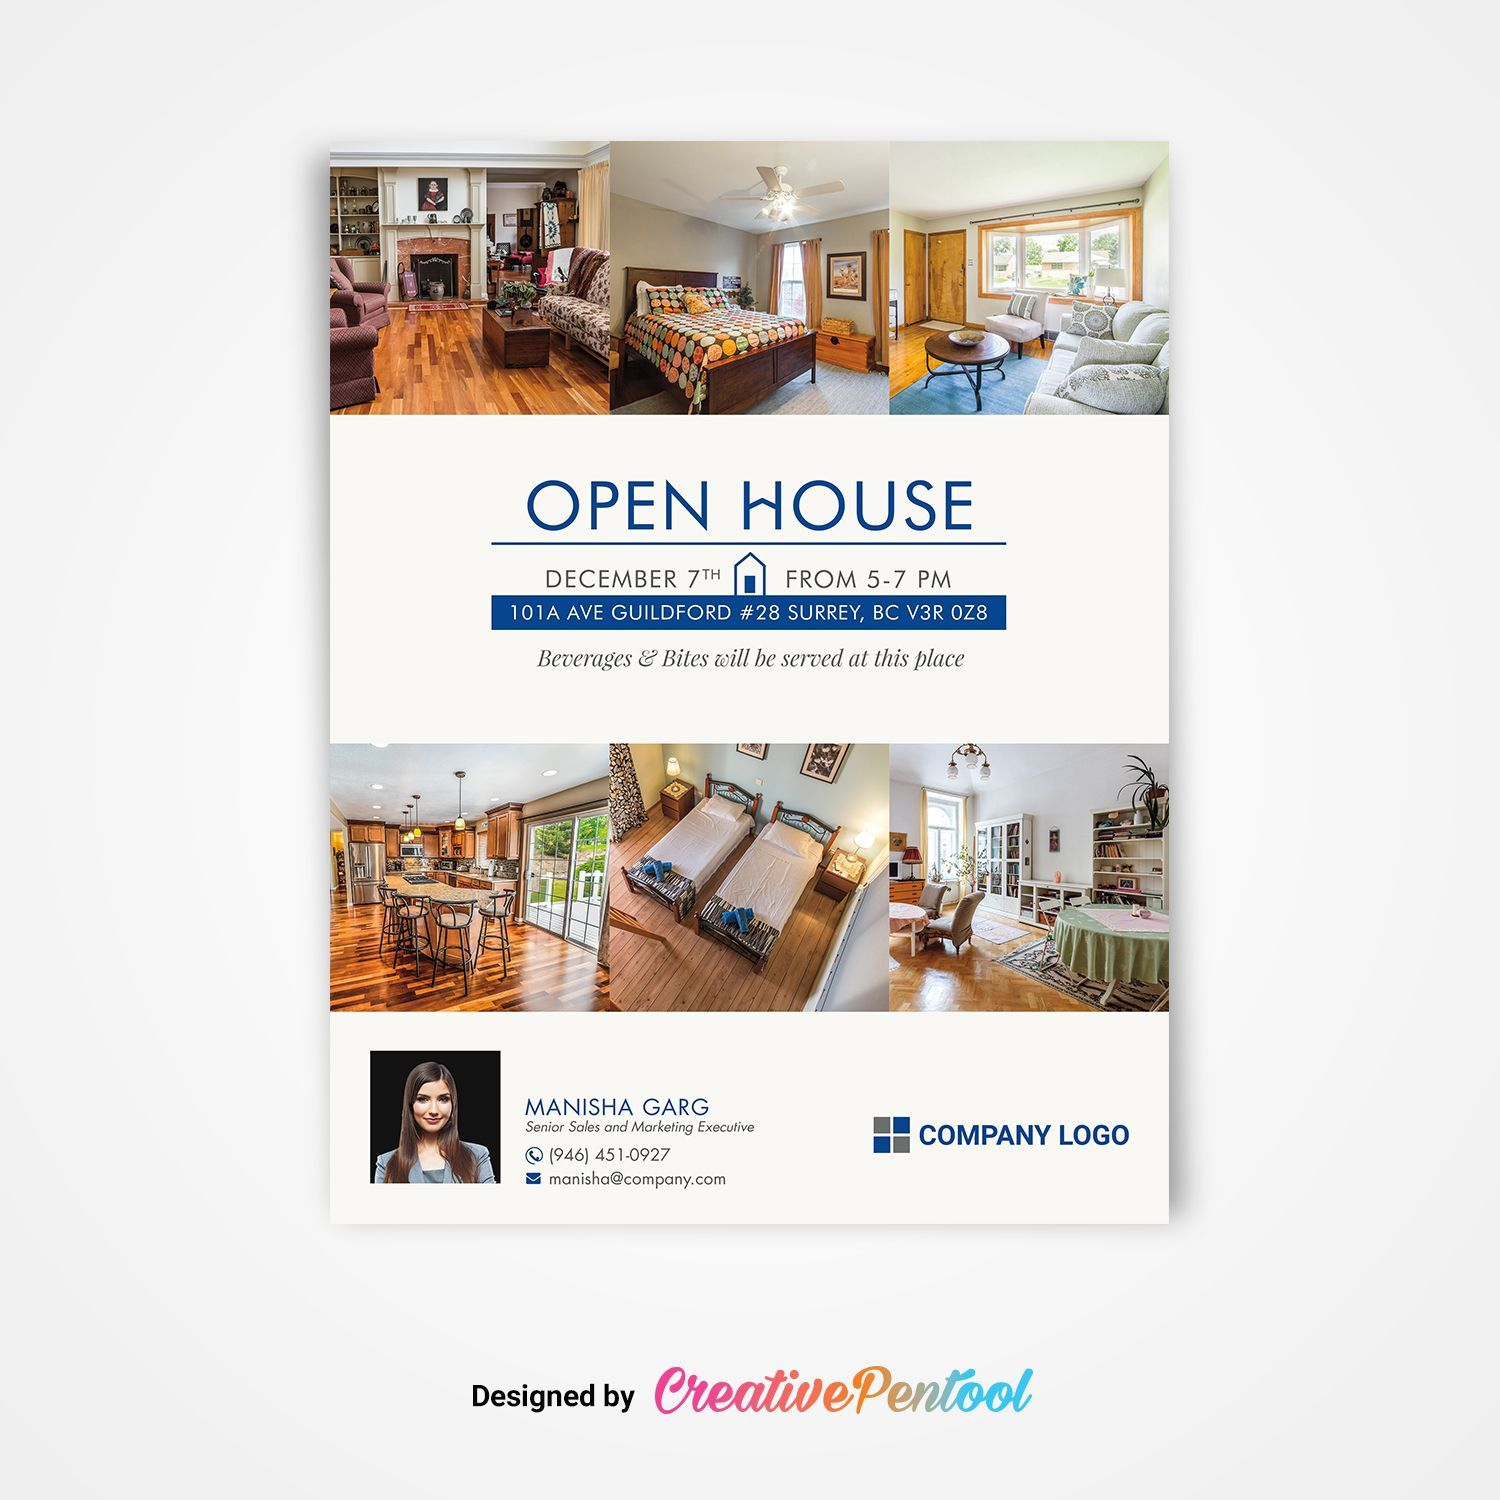 002 Sensational Open House Flyer Template Word High Definition  Free MicrosoftFull